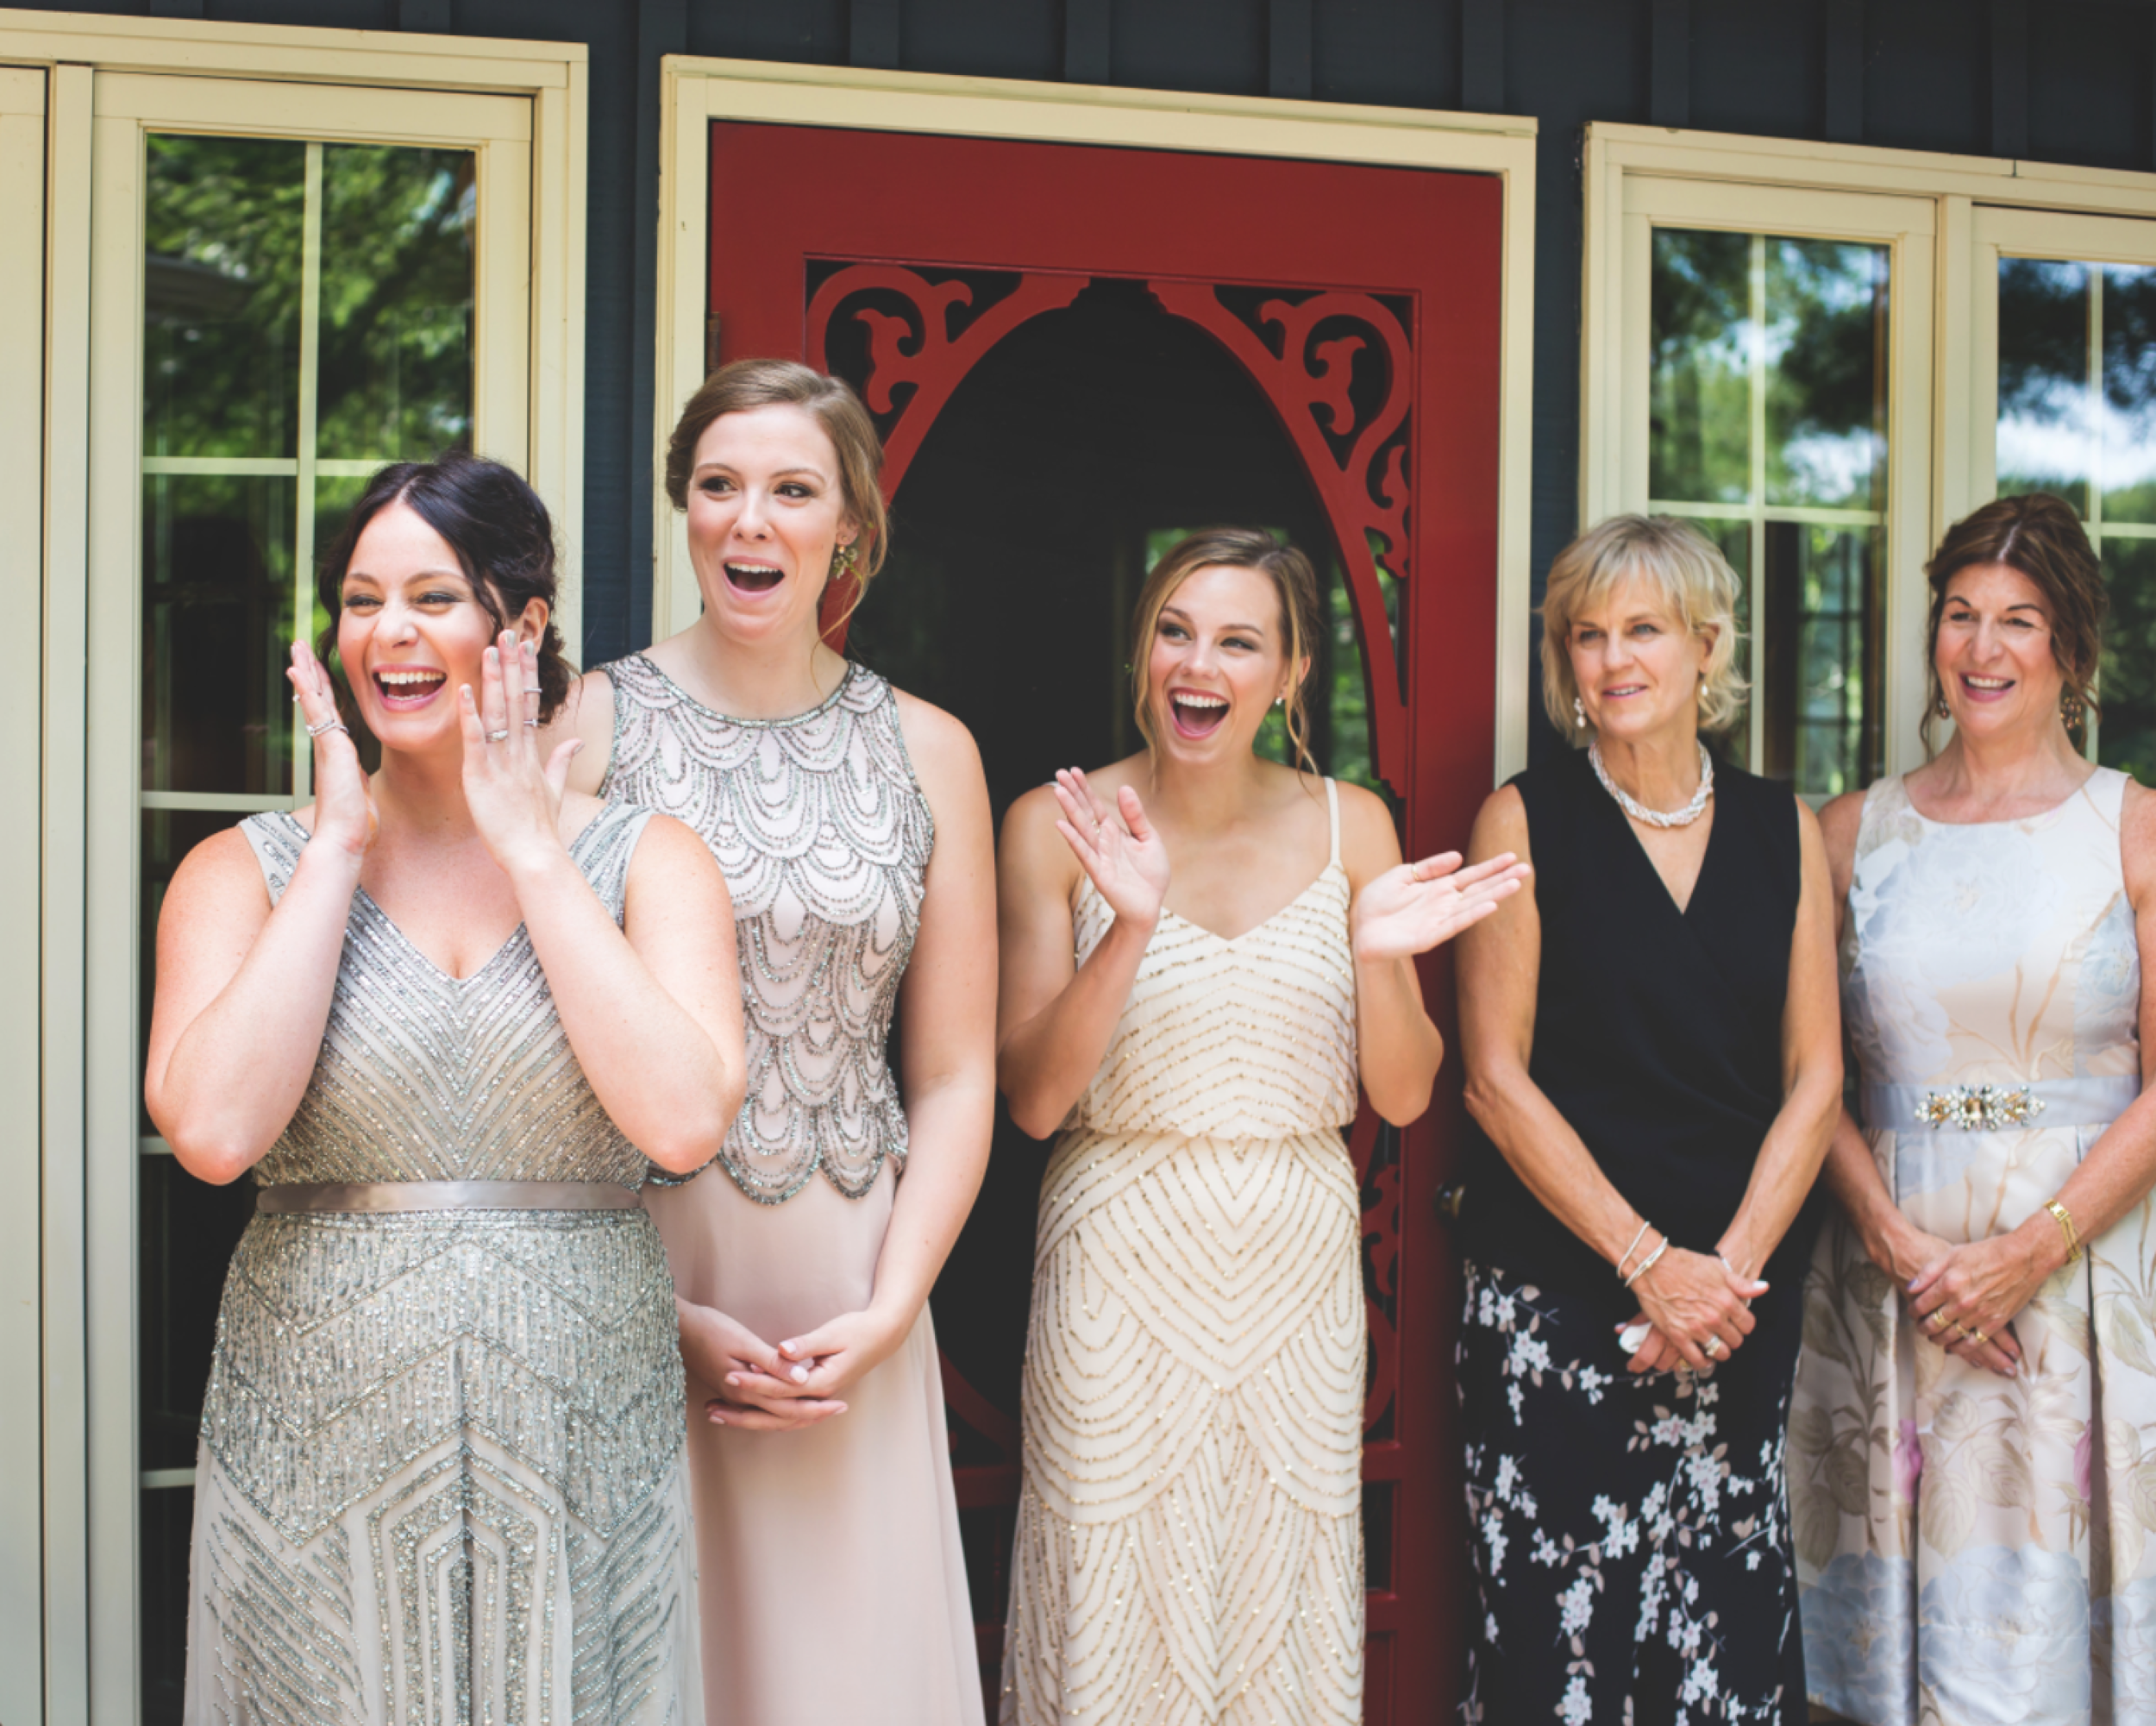 Wedding-Photos-Muskoka-Clevelands-House-Photographer-Wedding-Hamilton-GTA-Niagara-Oakville-Moments-by-Lauren-Photography-Photo-Image-9.png